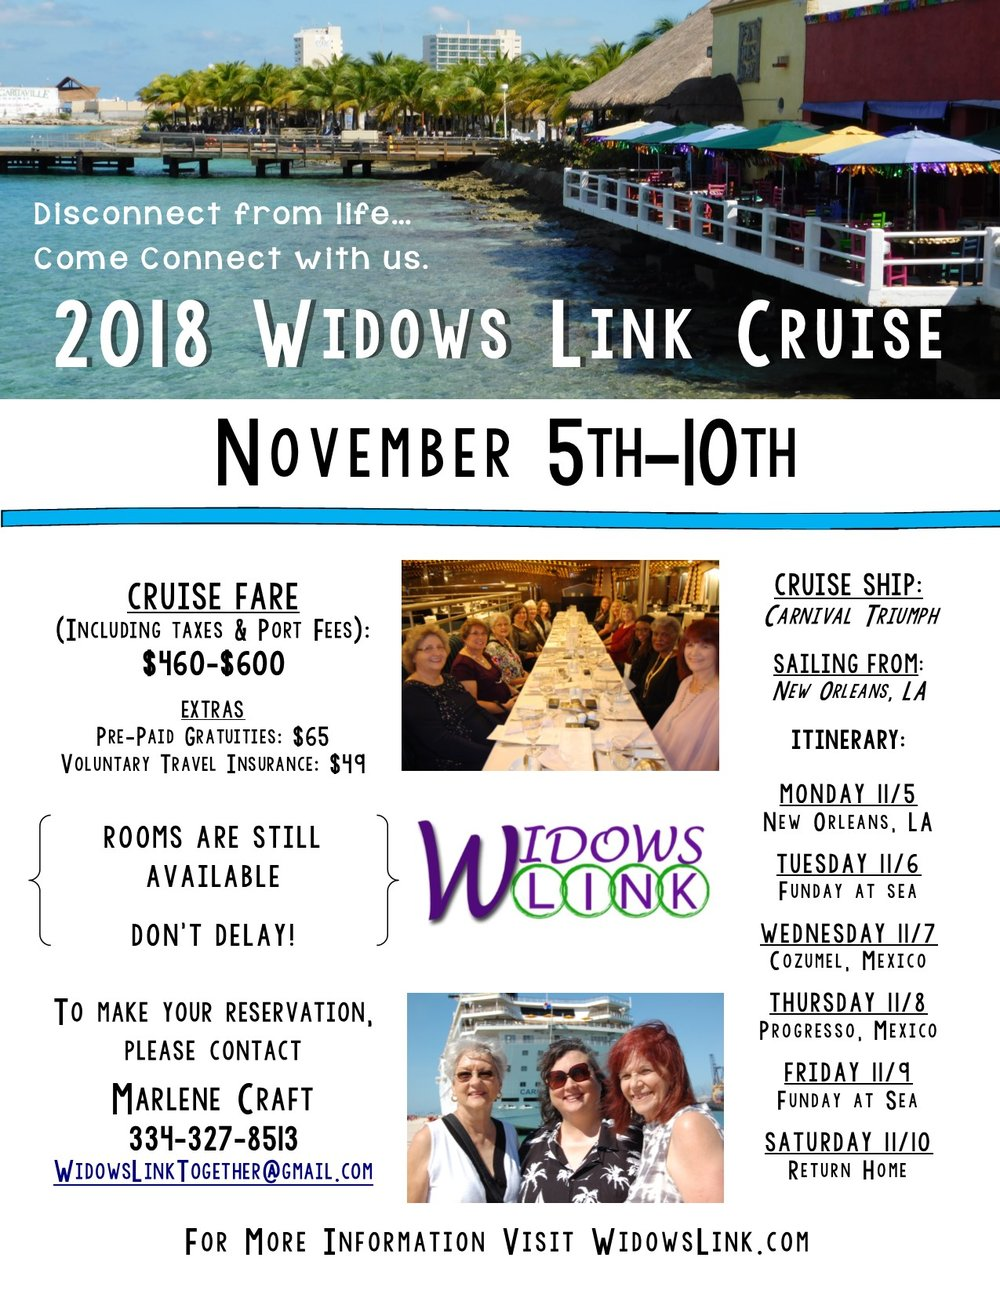 Widows Link Cruise Flyer 2018.jpg